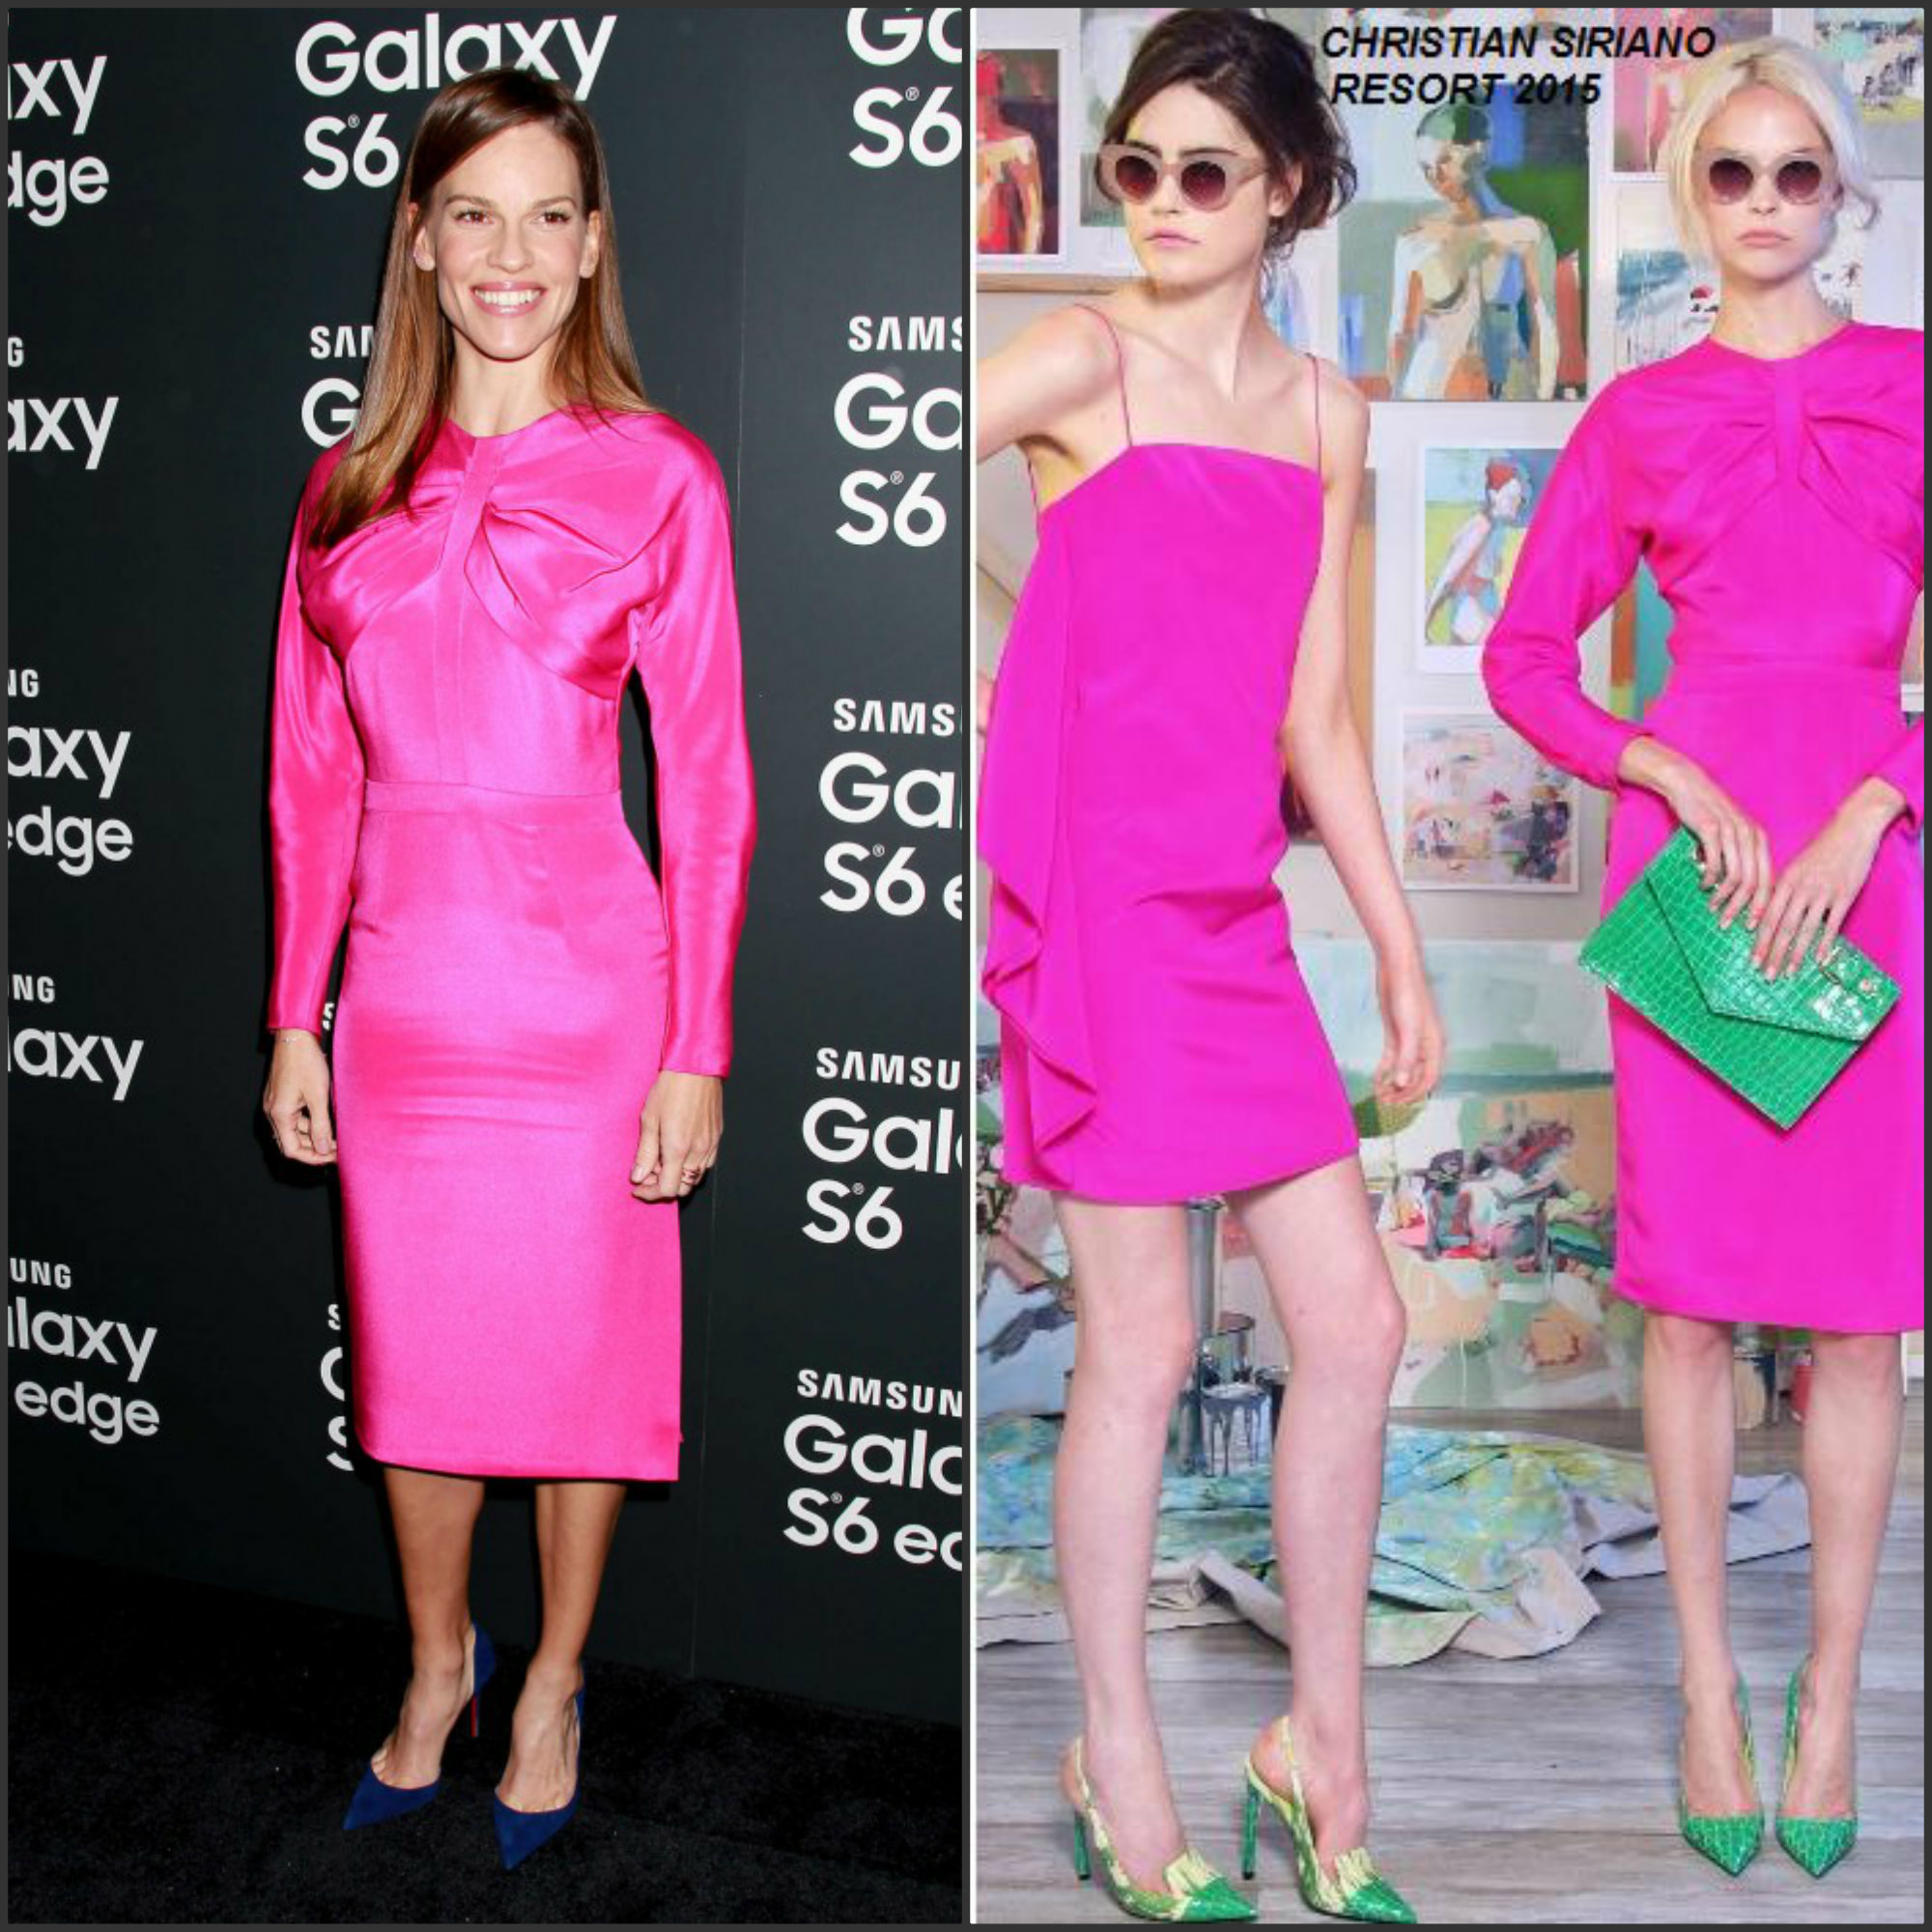 Hilary-Swank-in-Christian-Siriano-at-the-SAMSUNG-Galaxy-s6-Edge-Launch